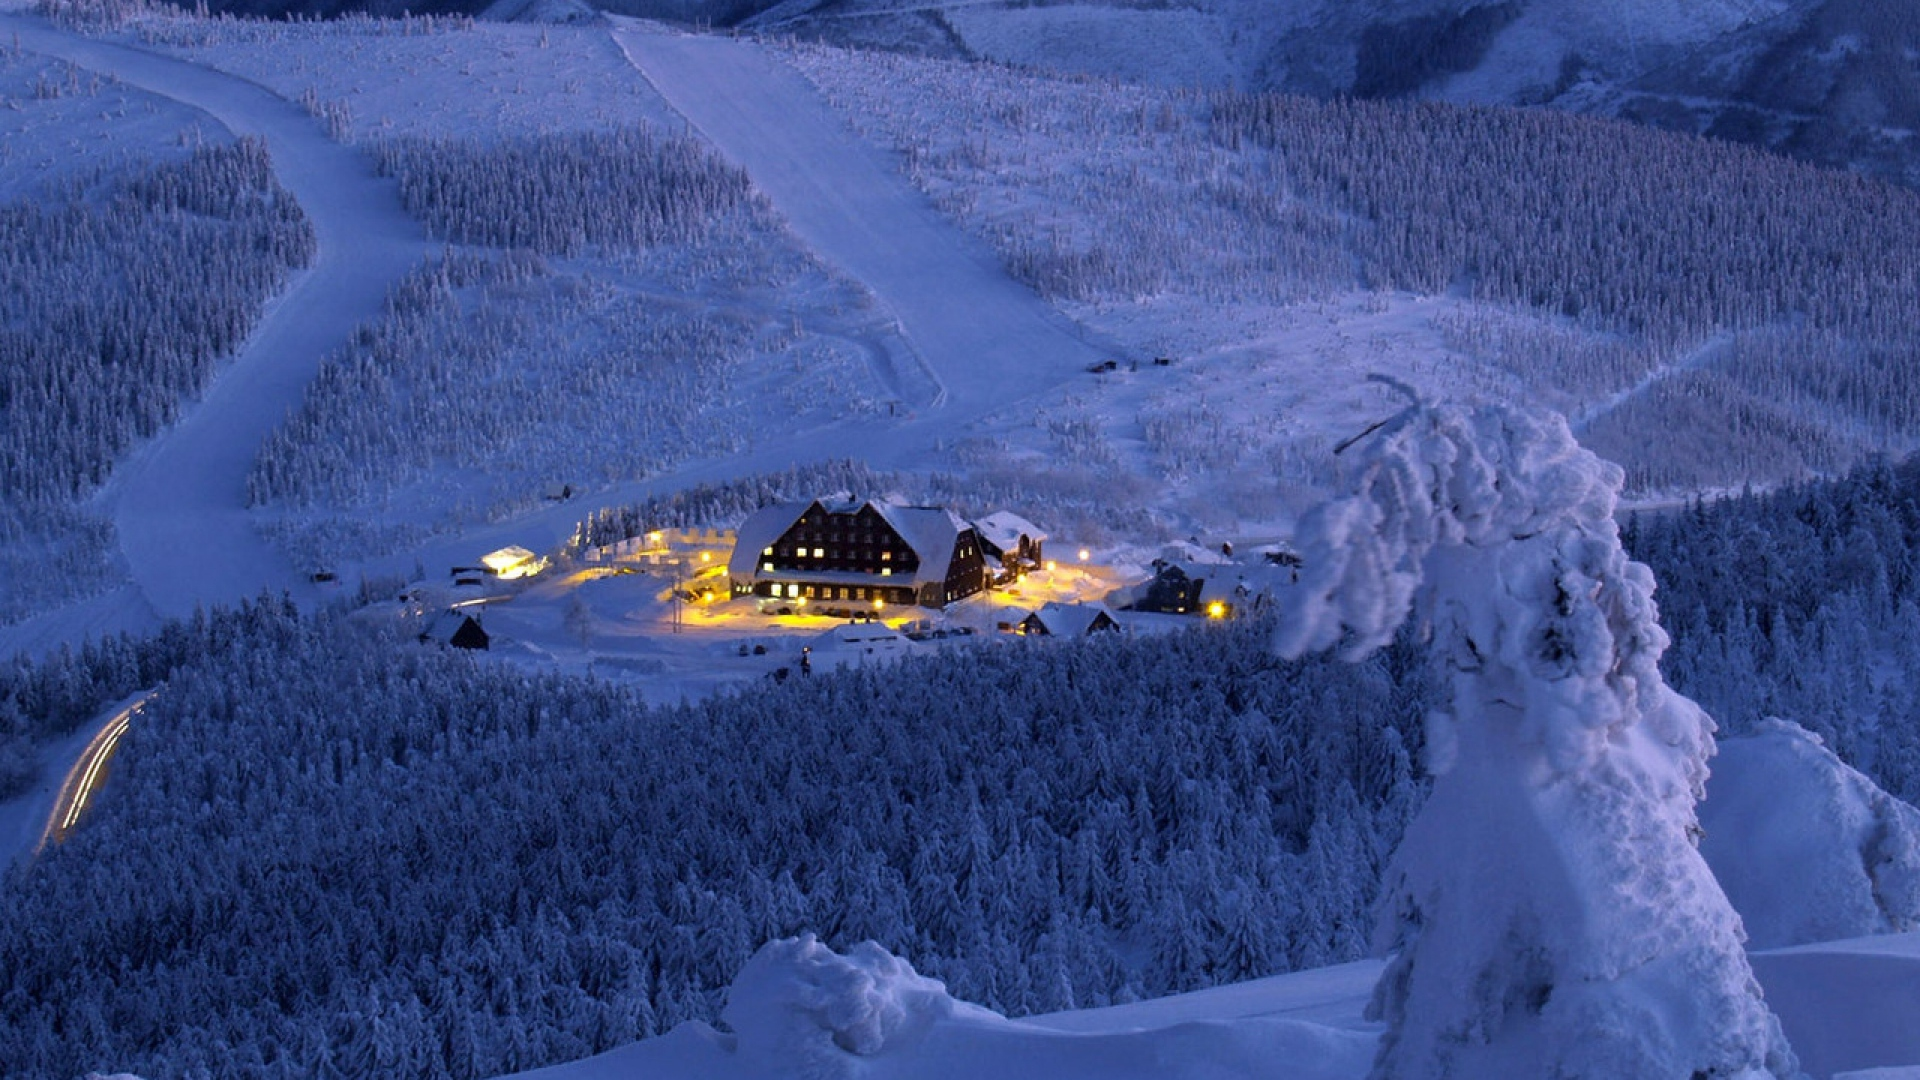 Download wallpaper 1920x1080 hotel mounting skiing resort for Sfondi desktop inverno montagna